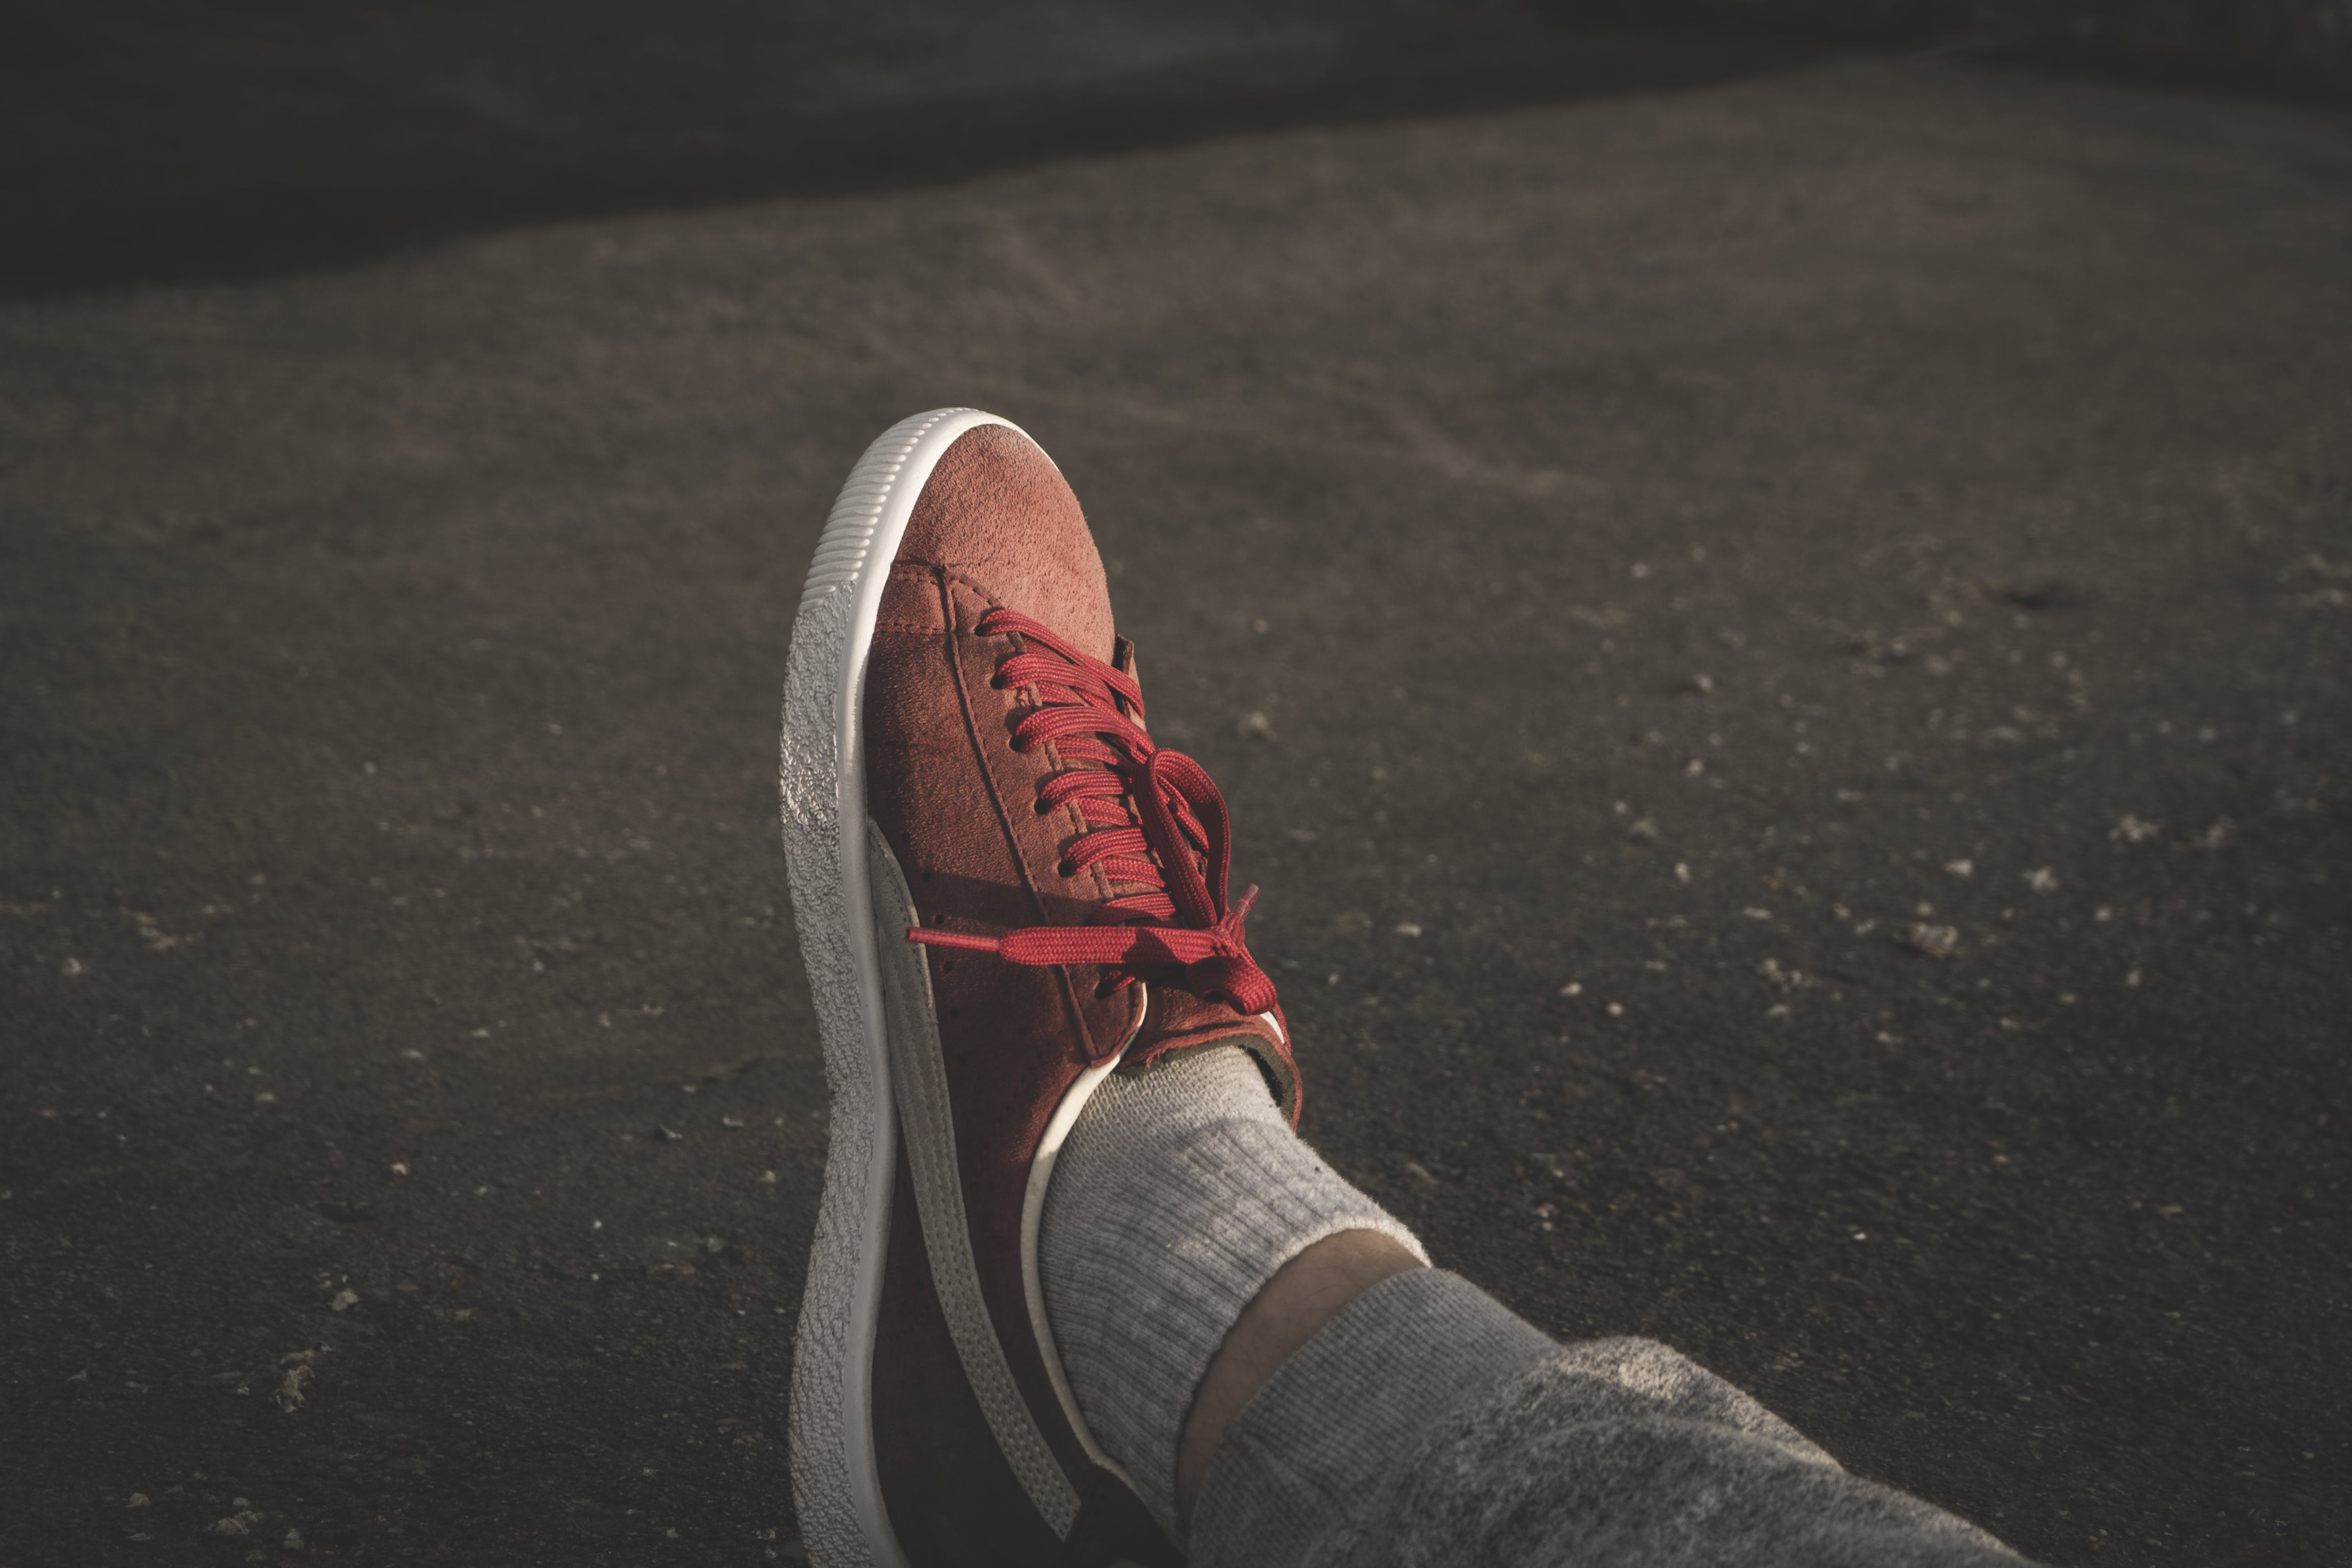 Person Wearing Red Puma Sneaker